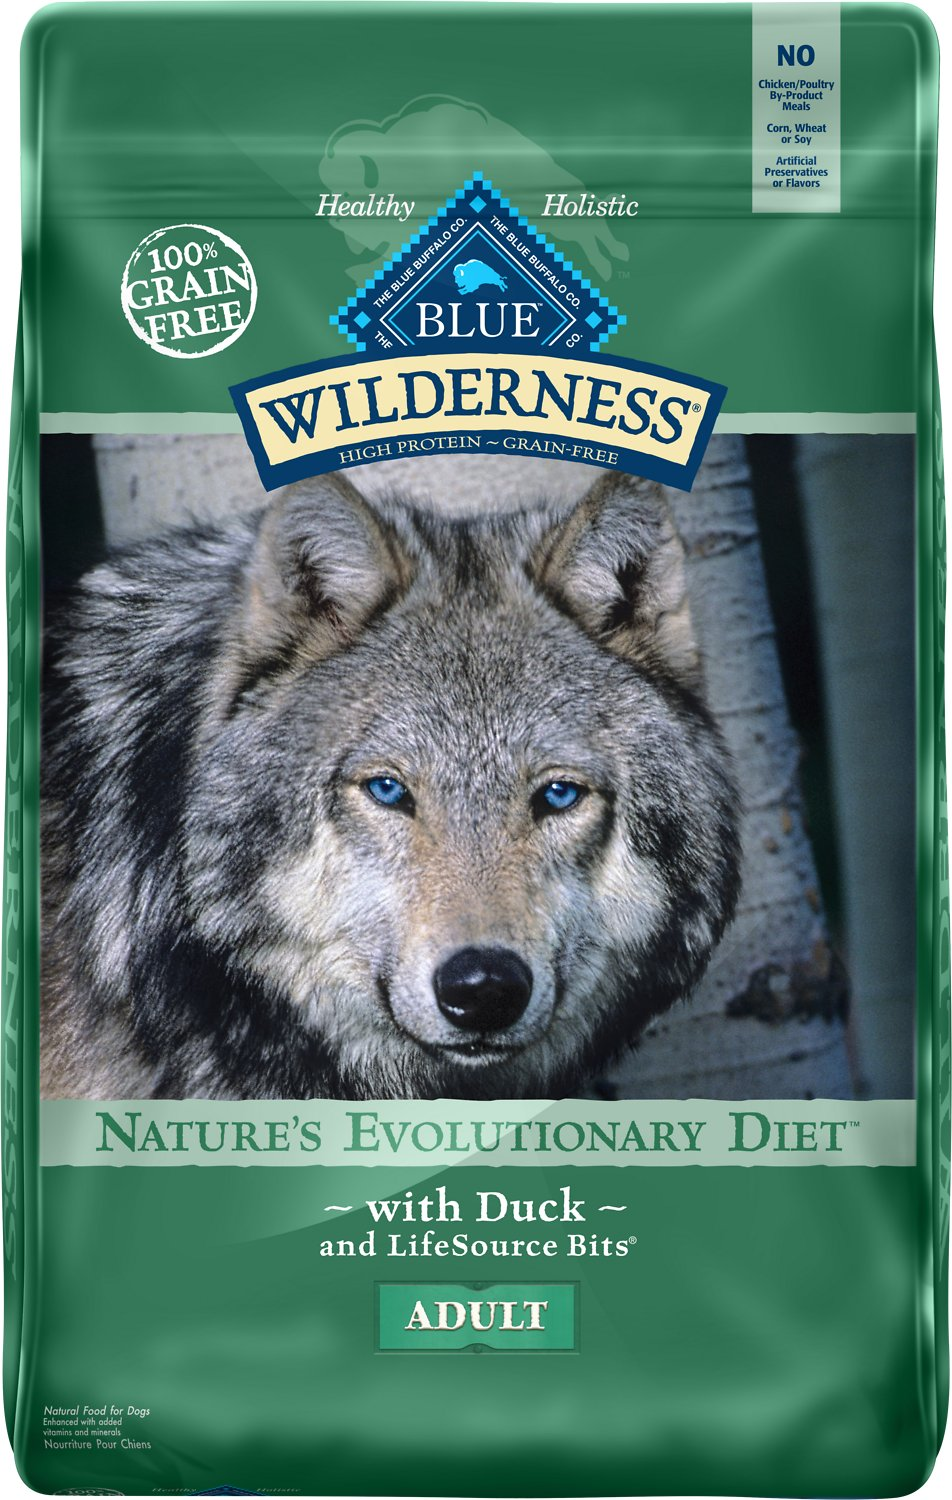 Blue Buffalo Wilderness Duck Recipe Grain-Free Dry Dog Food Image